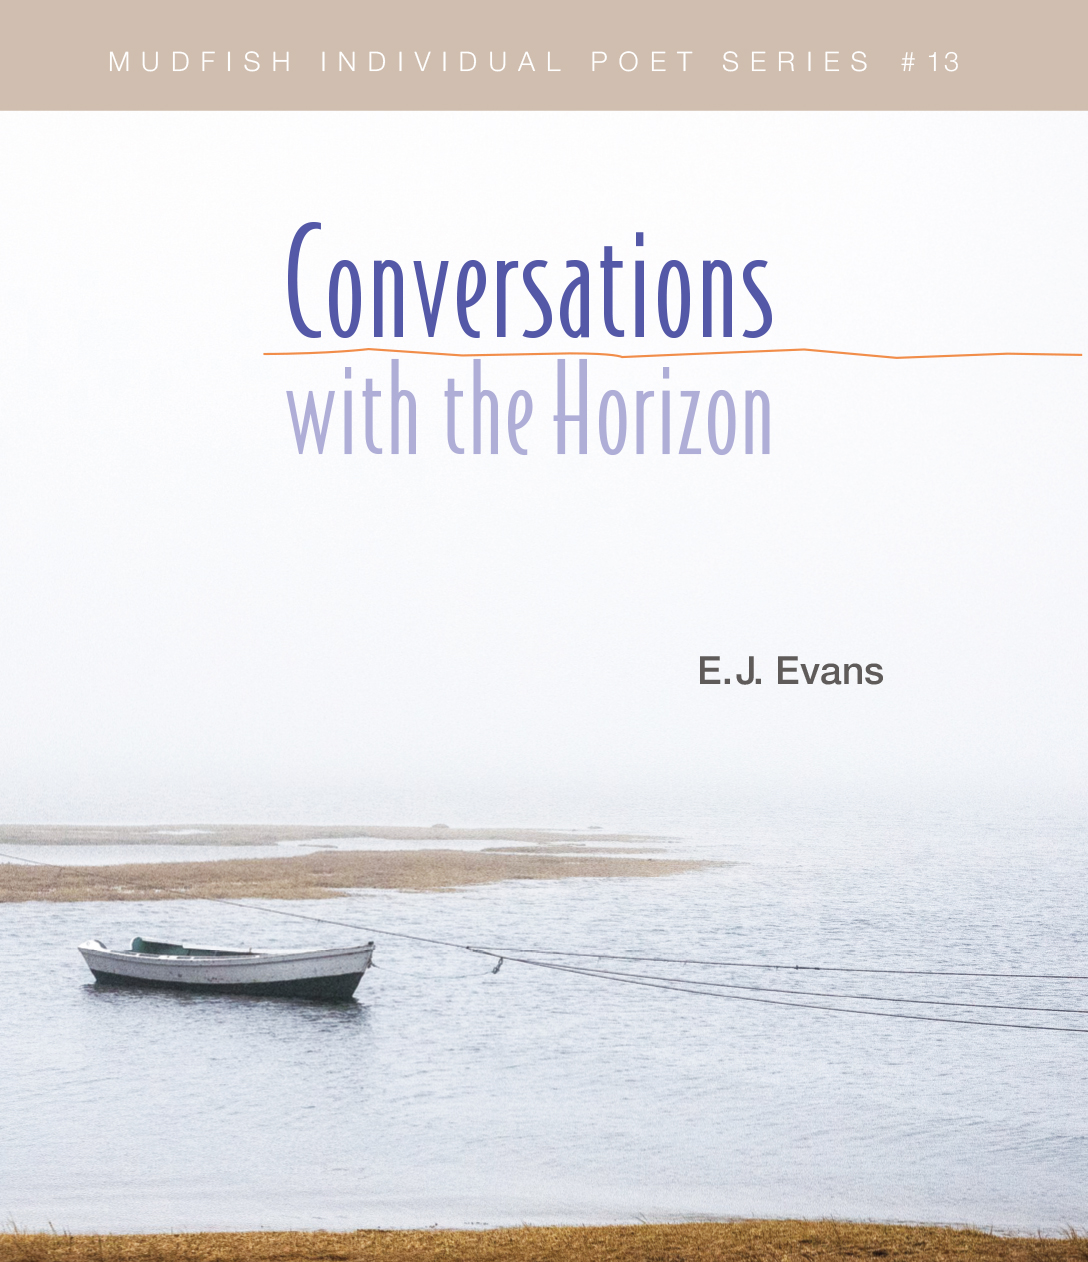 Conversations with the Horizon